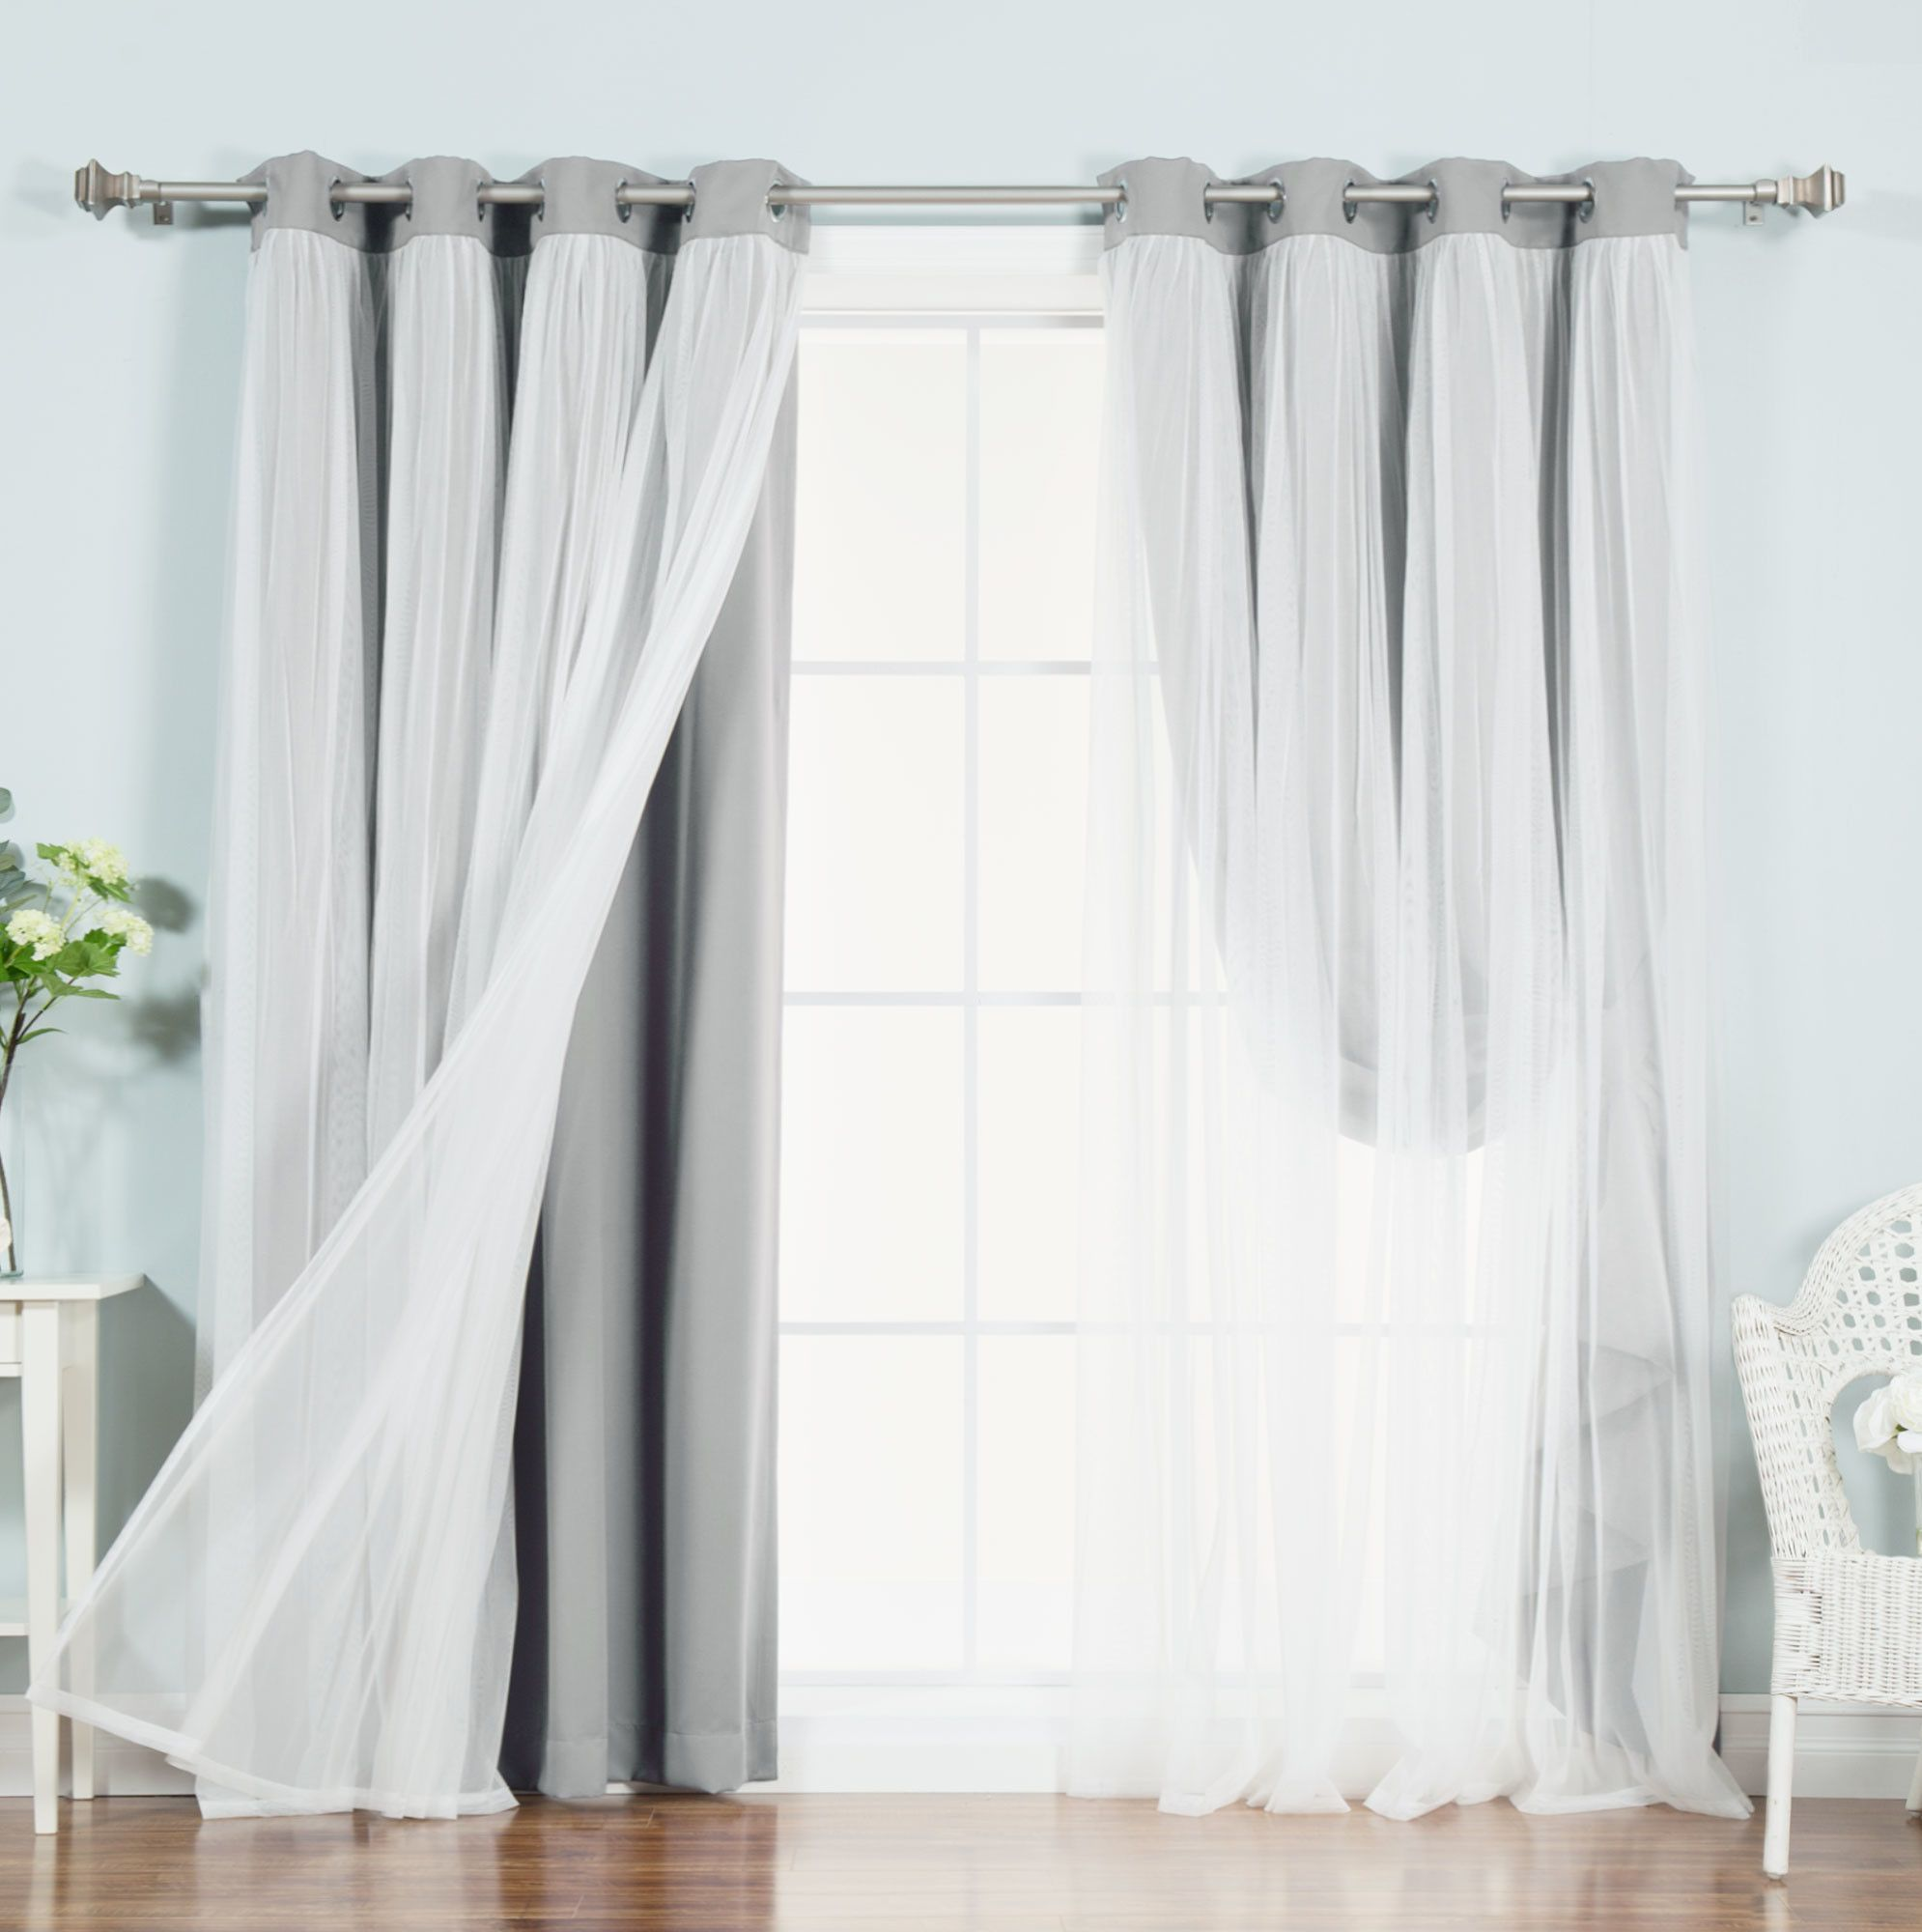 exciting efficient eclipse panel energy blackout and walmart dazzling together rmal as rc saving in grommets grommet for bobbi comfortable mind zodiac qquobi glass curtains wells quality blue sliding com insulatedwindow grey curtain insulated